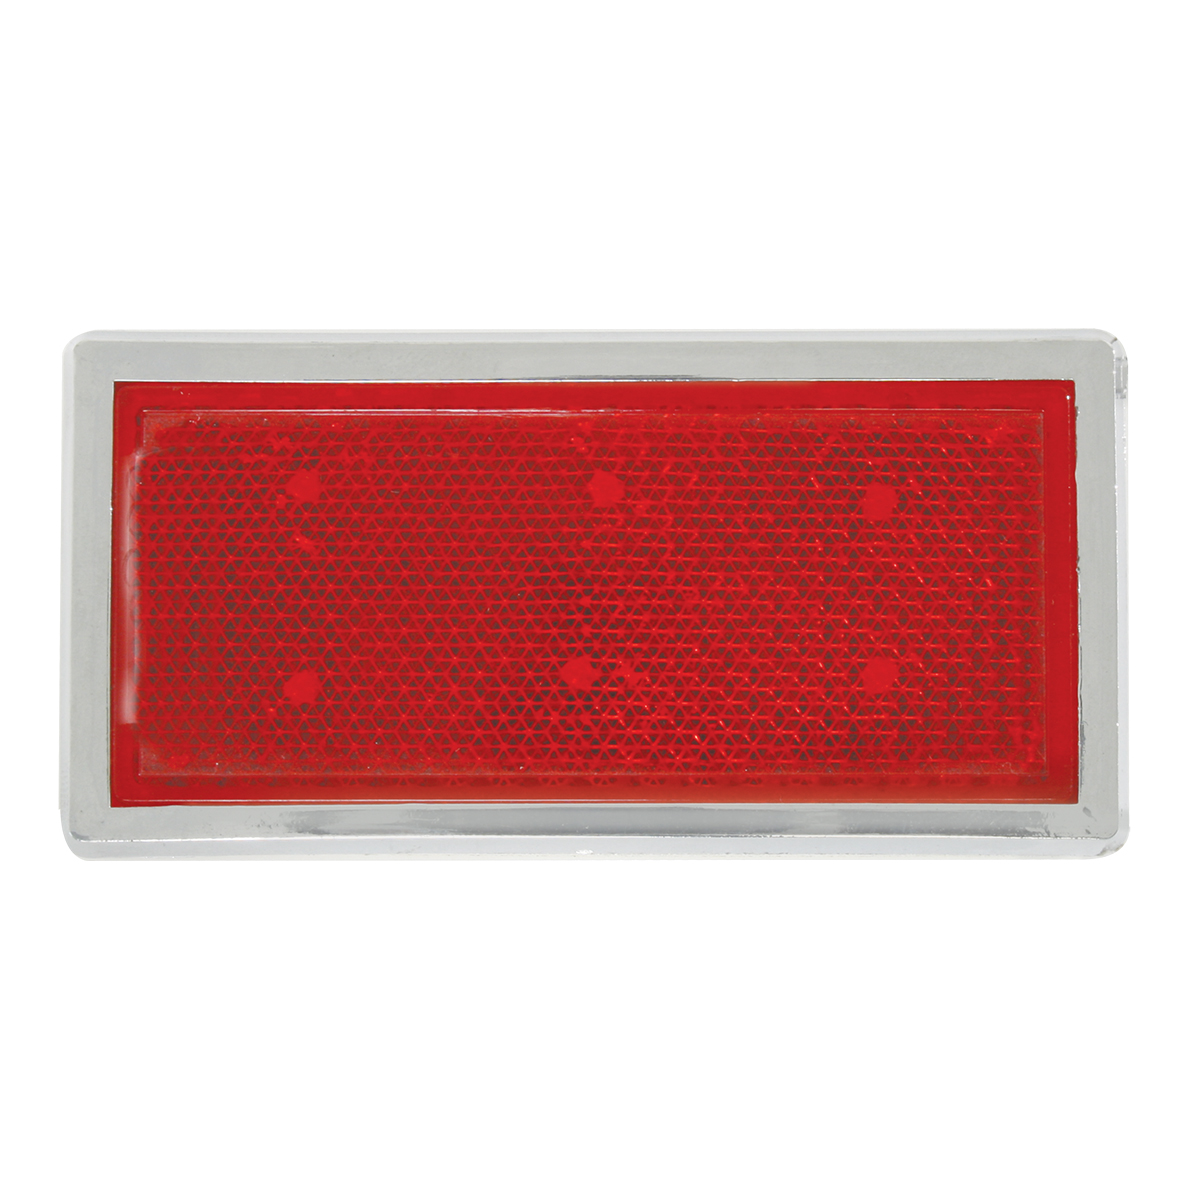 80854 Red Rectangular Stick-On Reflector w/ Chrome Trim